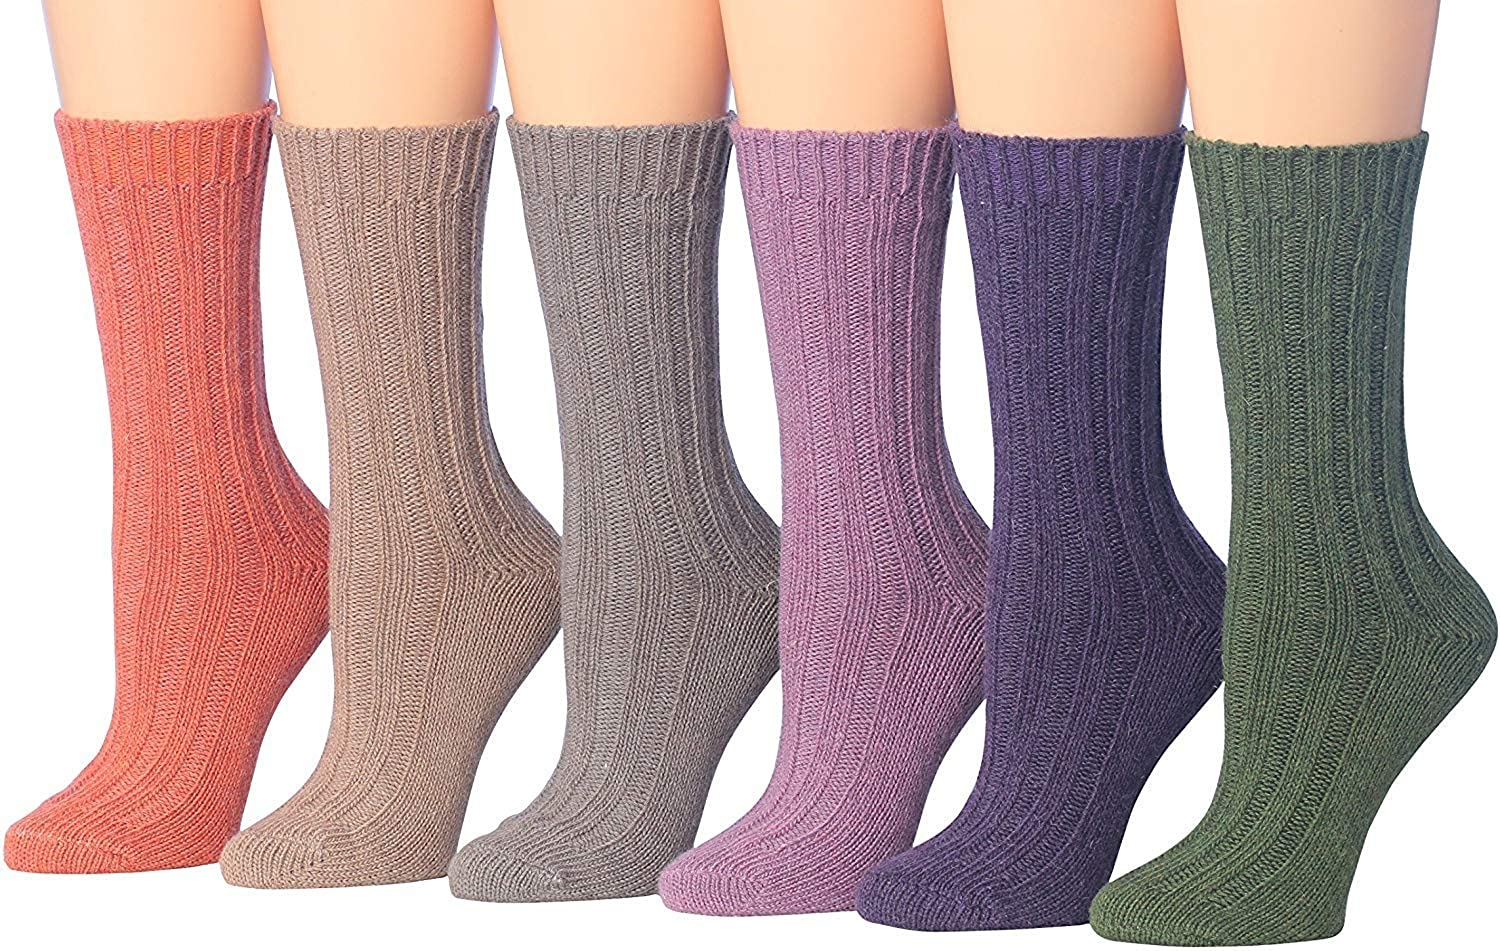 Tipi Toe Women's Fashion Wool Blend Super Soft Ribbed Winter Boot Socks